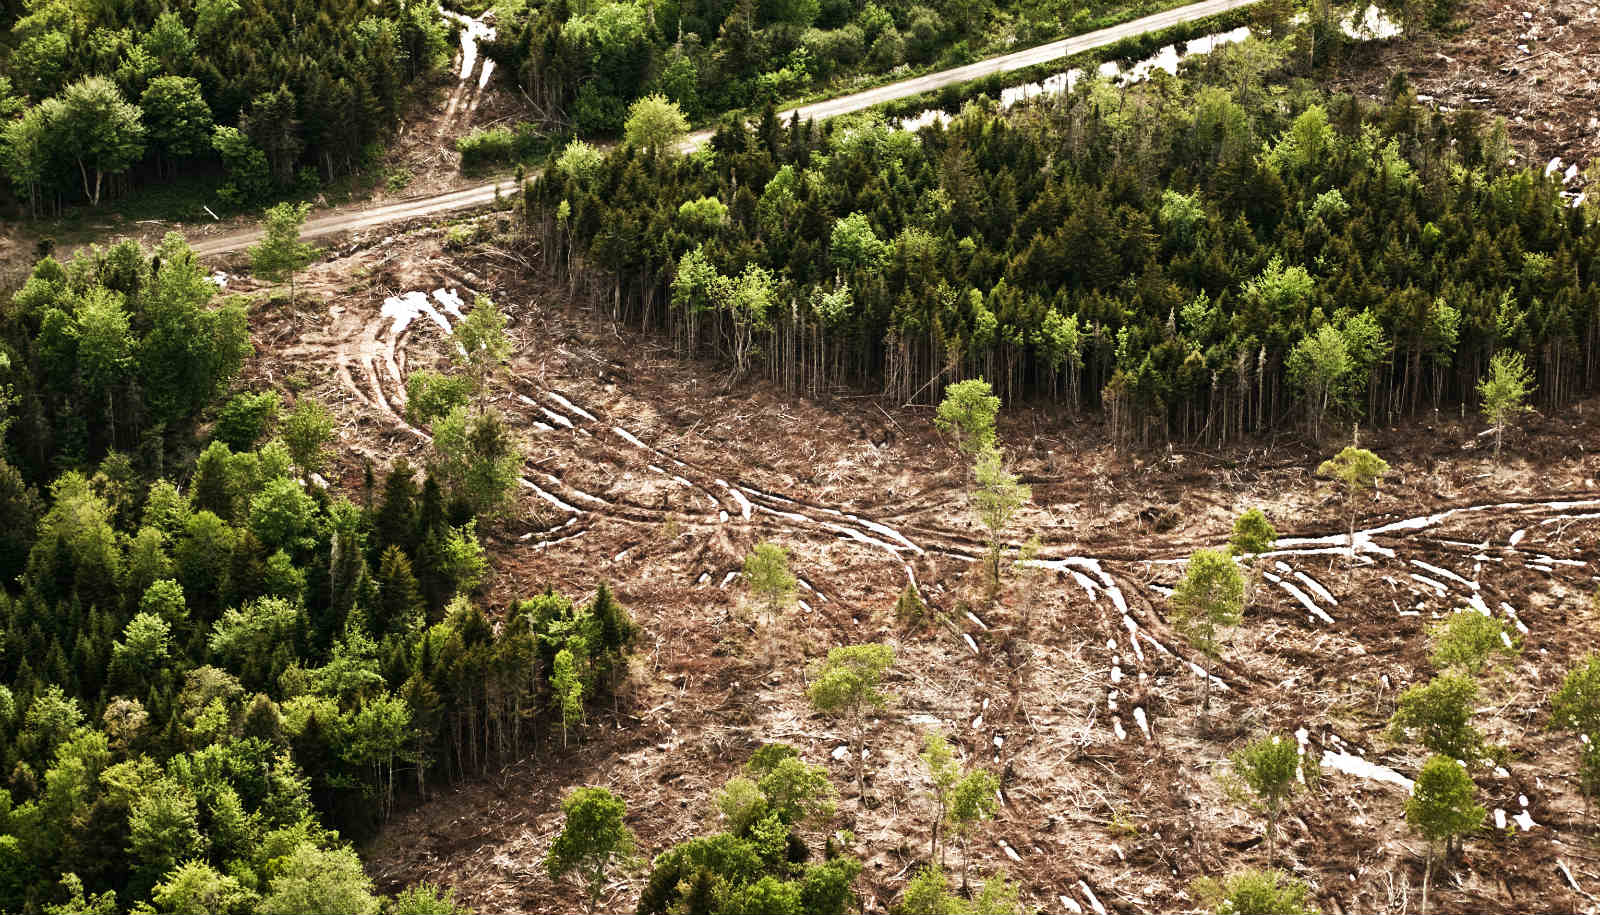 satellite images show a rainforest being deforested futurity